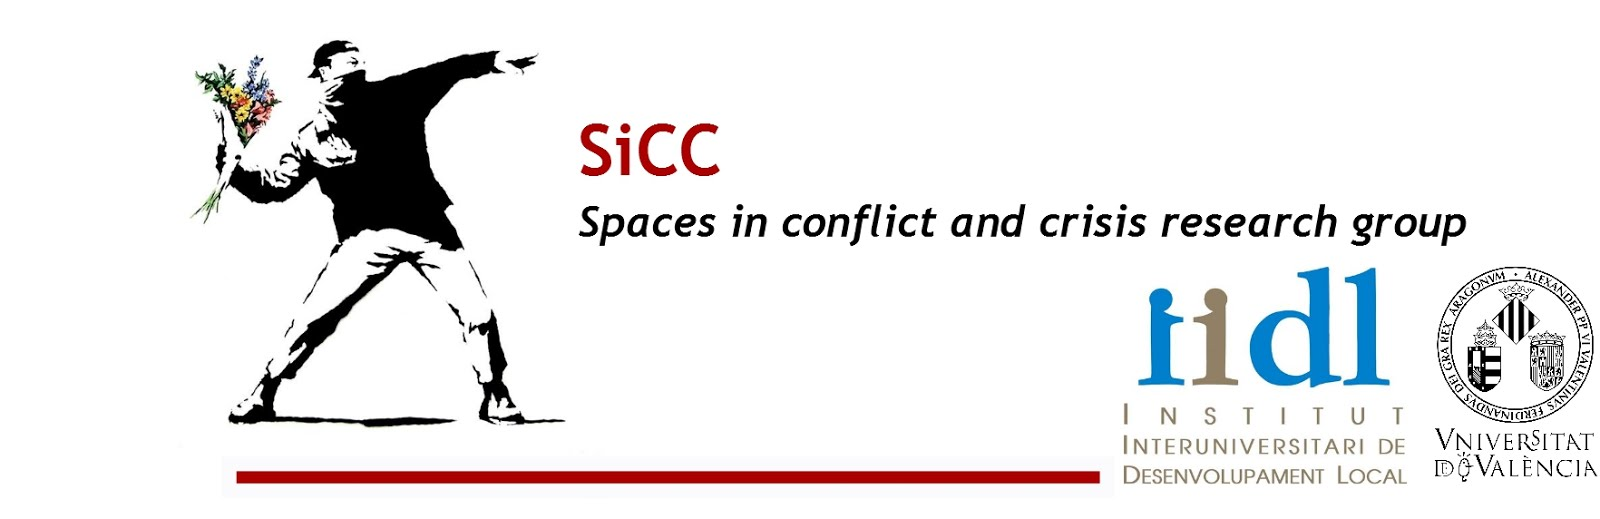 Spaces in conflict and crisis